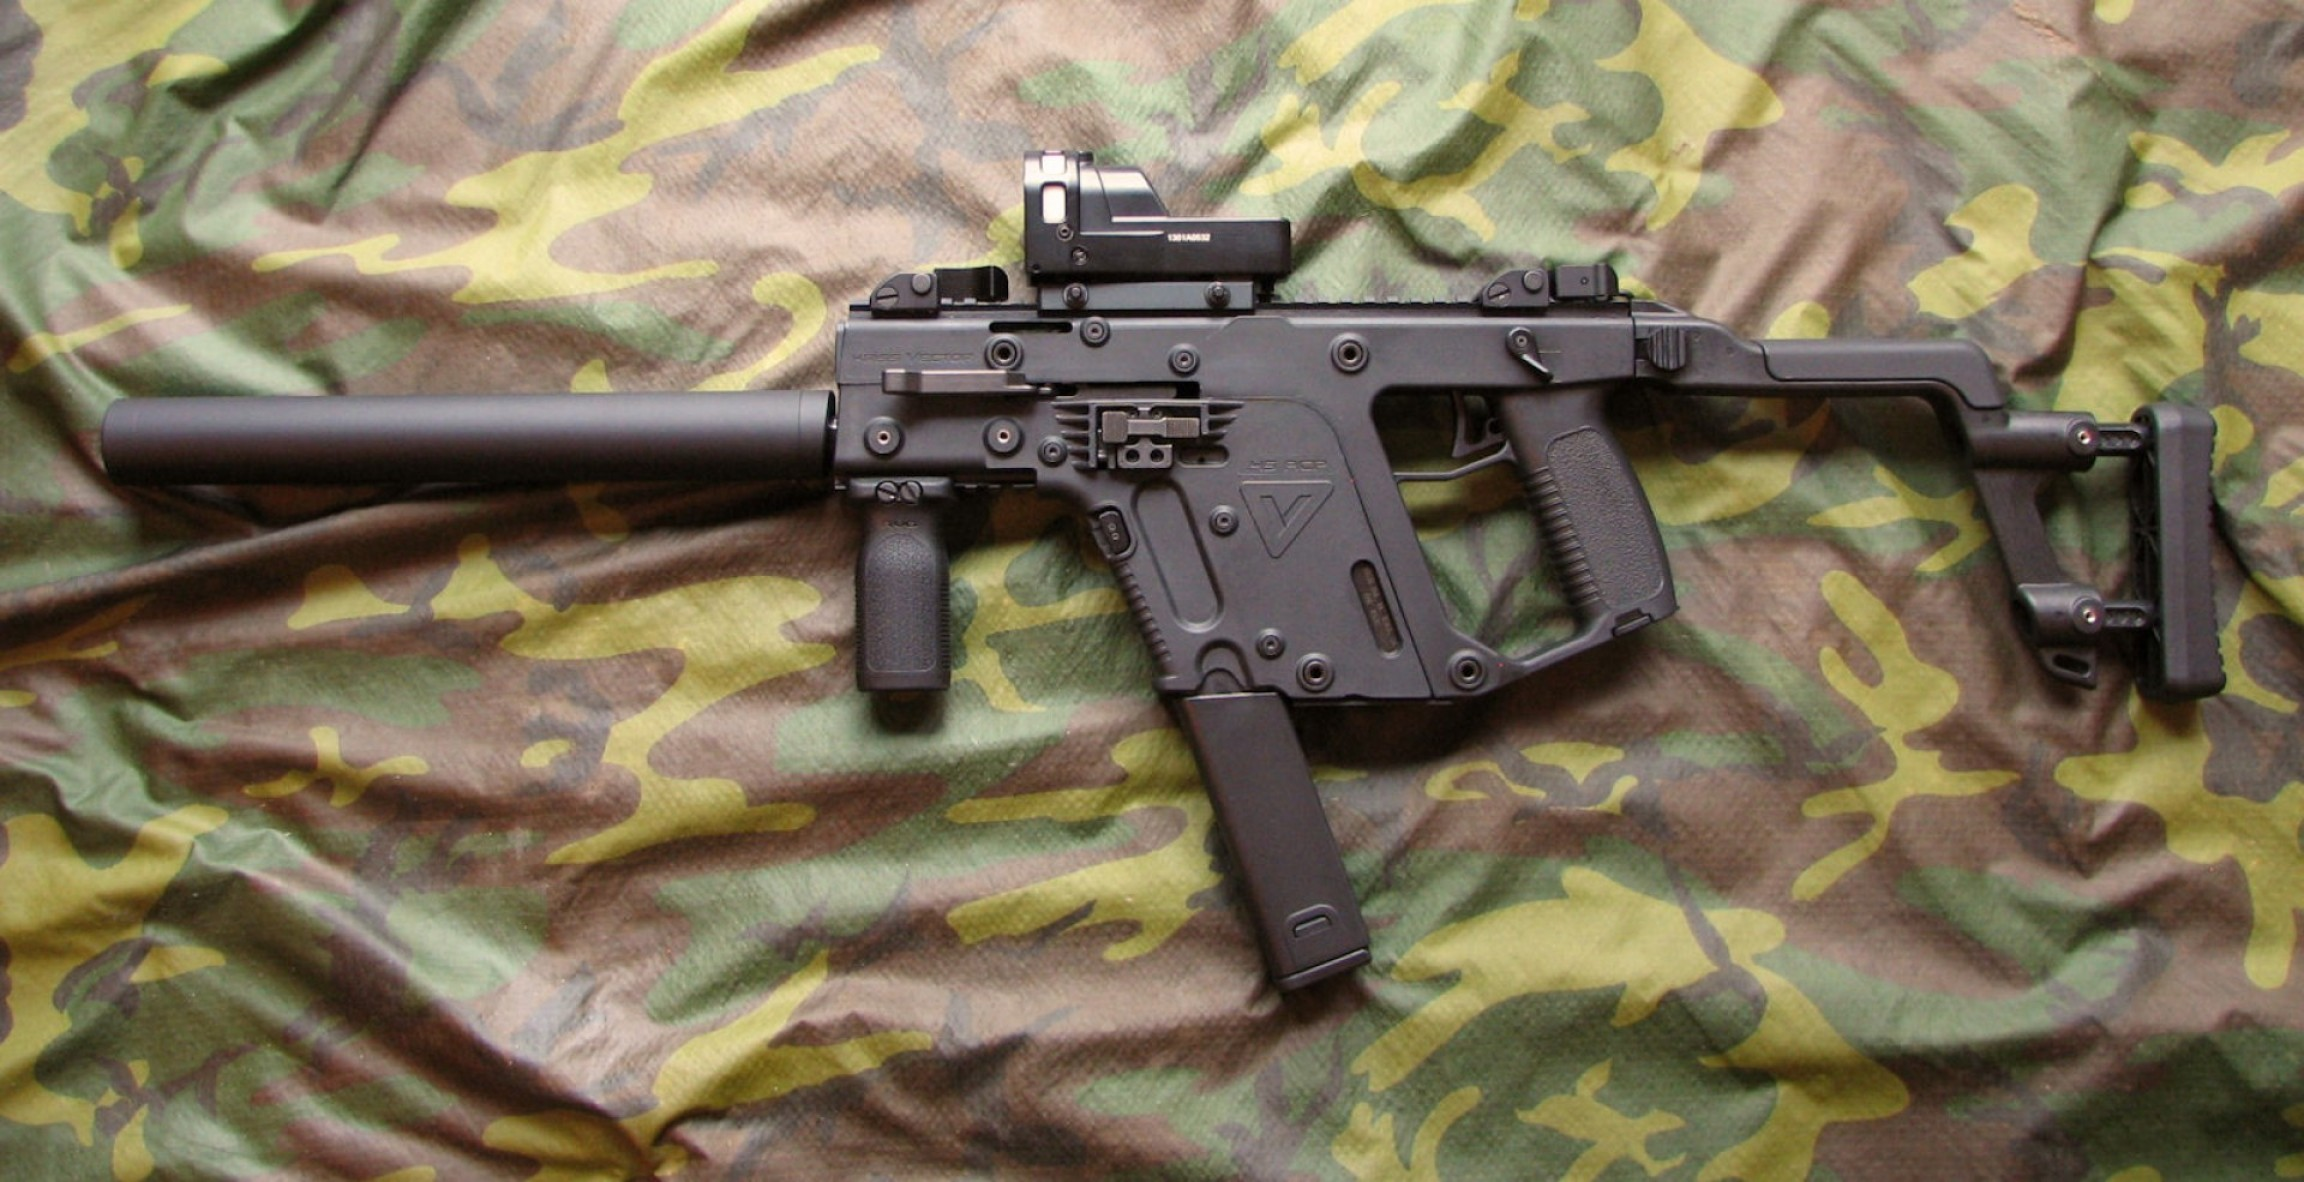 New Kriss Vector: T New Kriss Vector Crb Owner